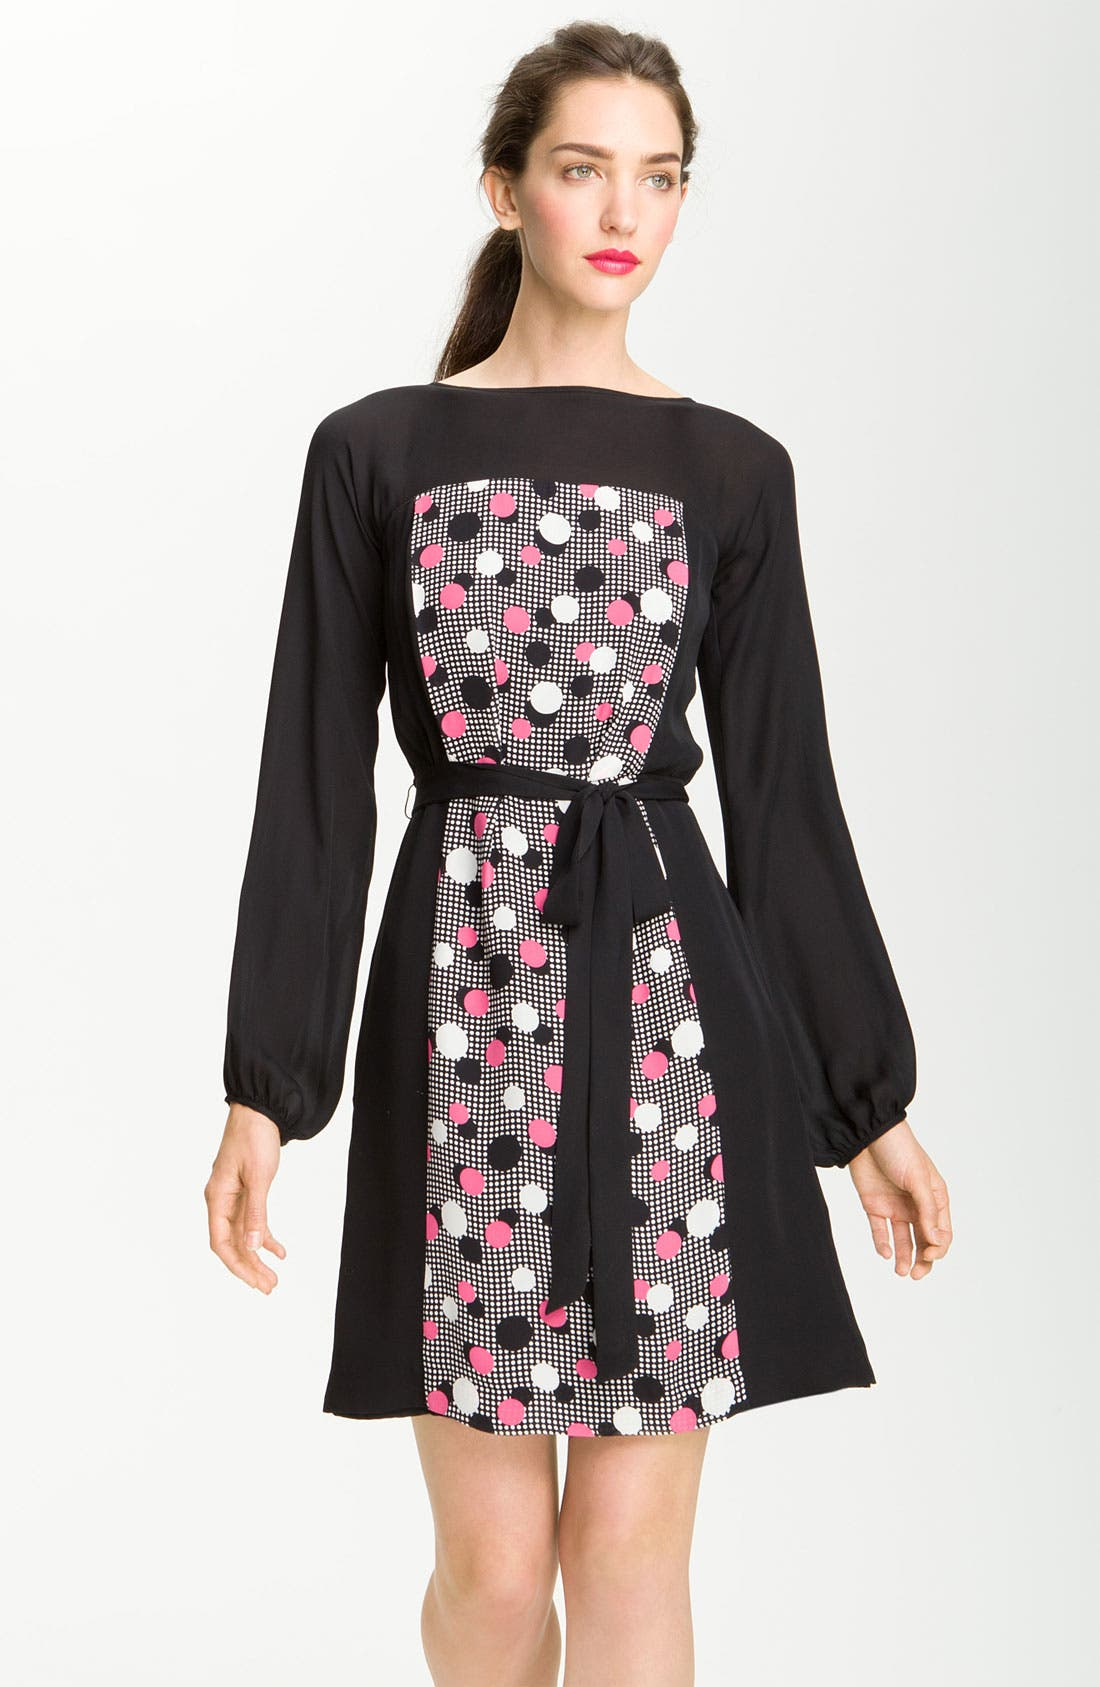 Alternate Image 1 Selected - Milly 'Deco Dots' Print Dress